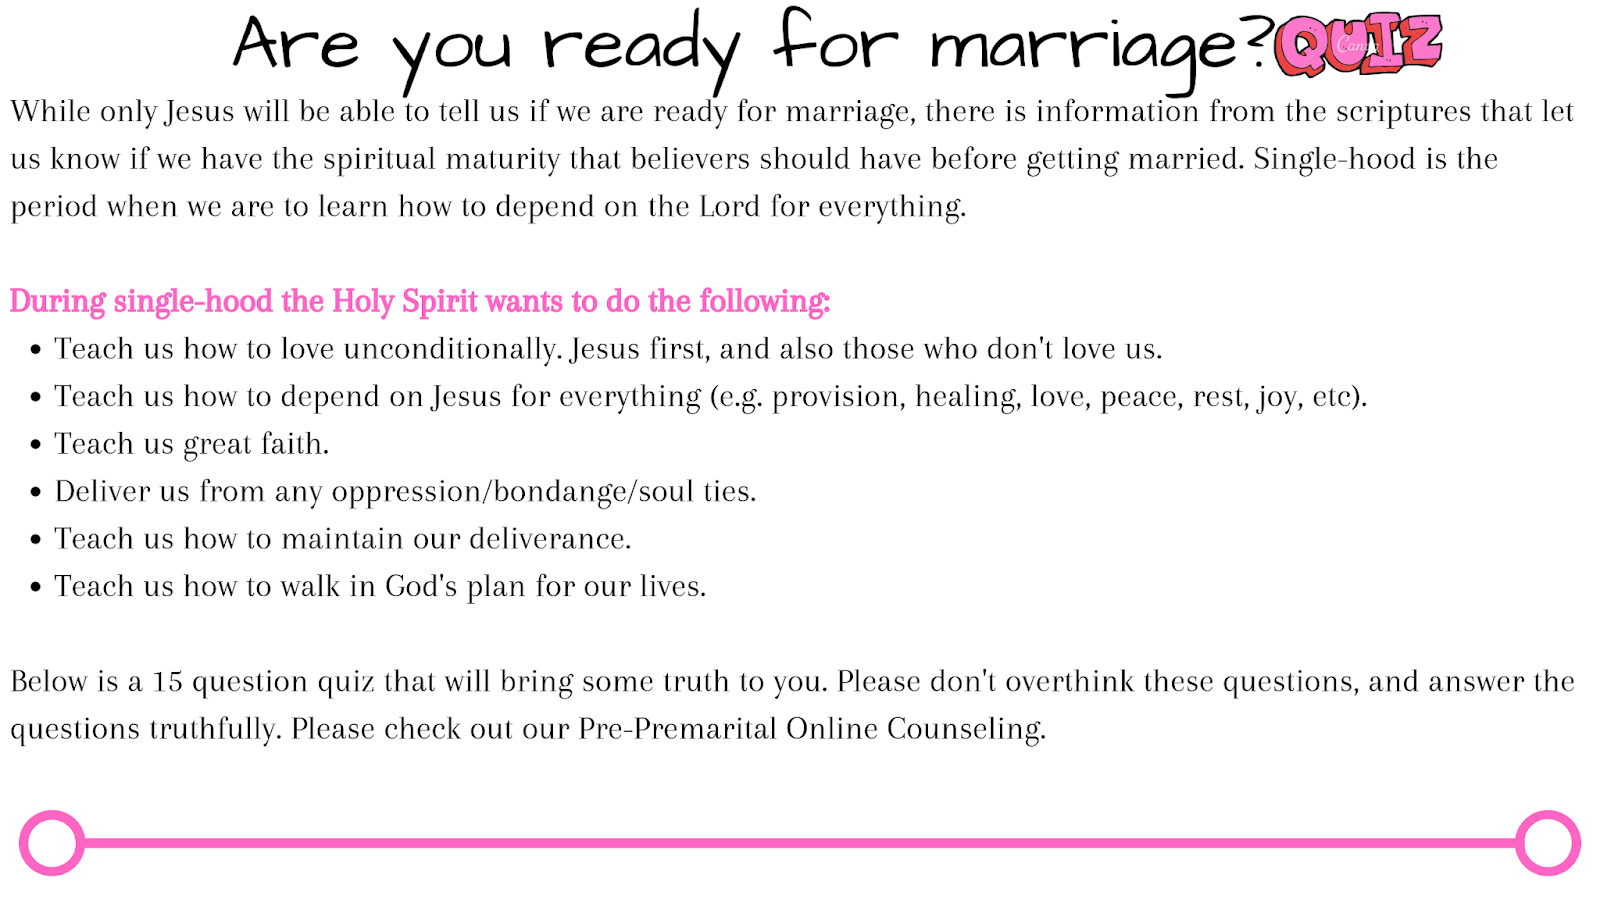 Online Quiz: Do you think you're ready for marriage?